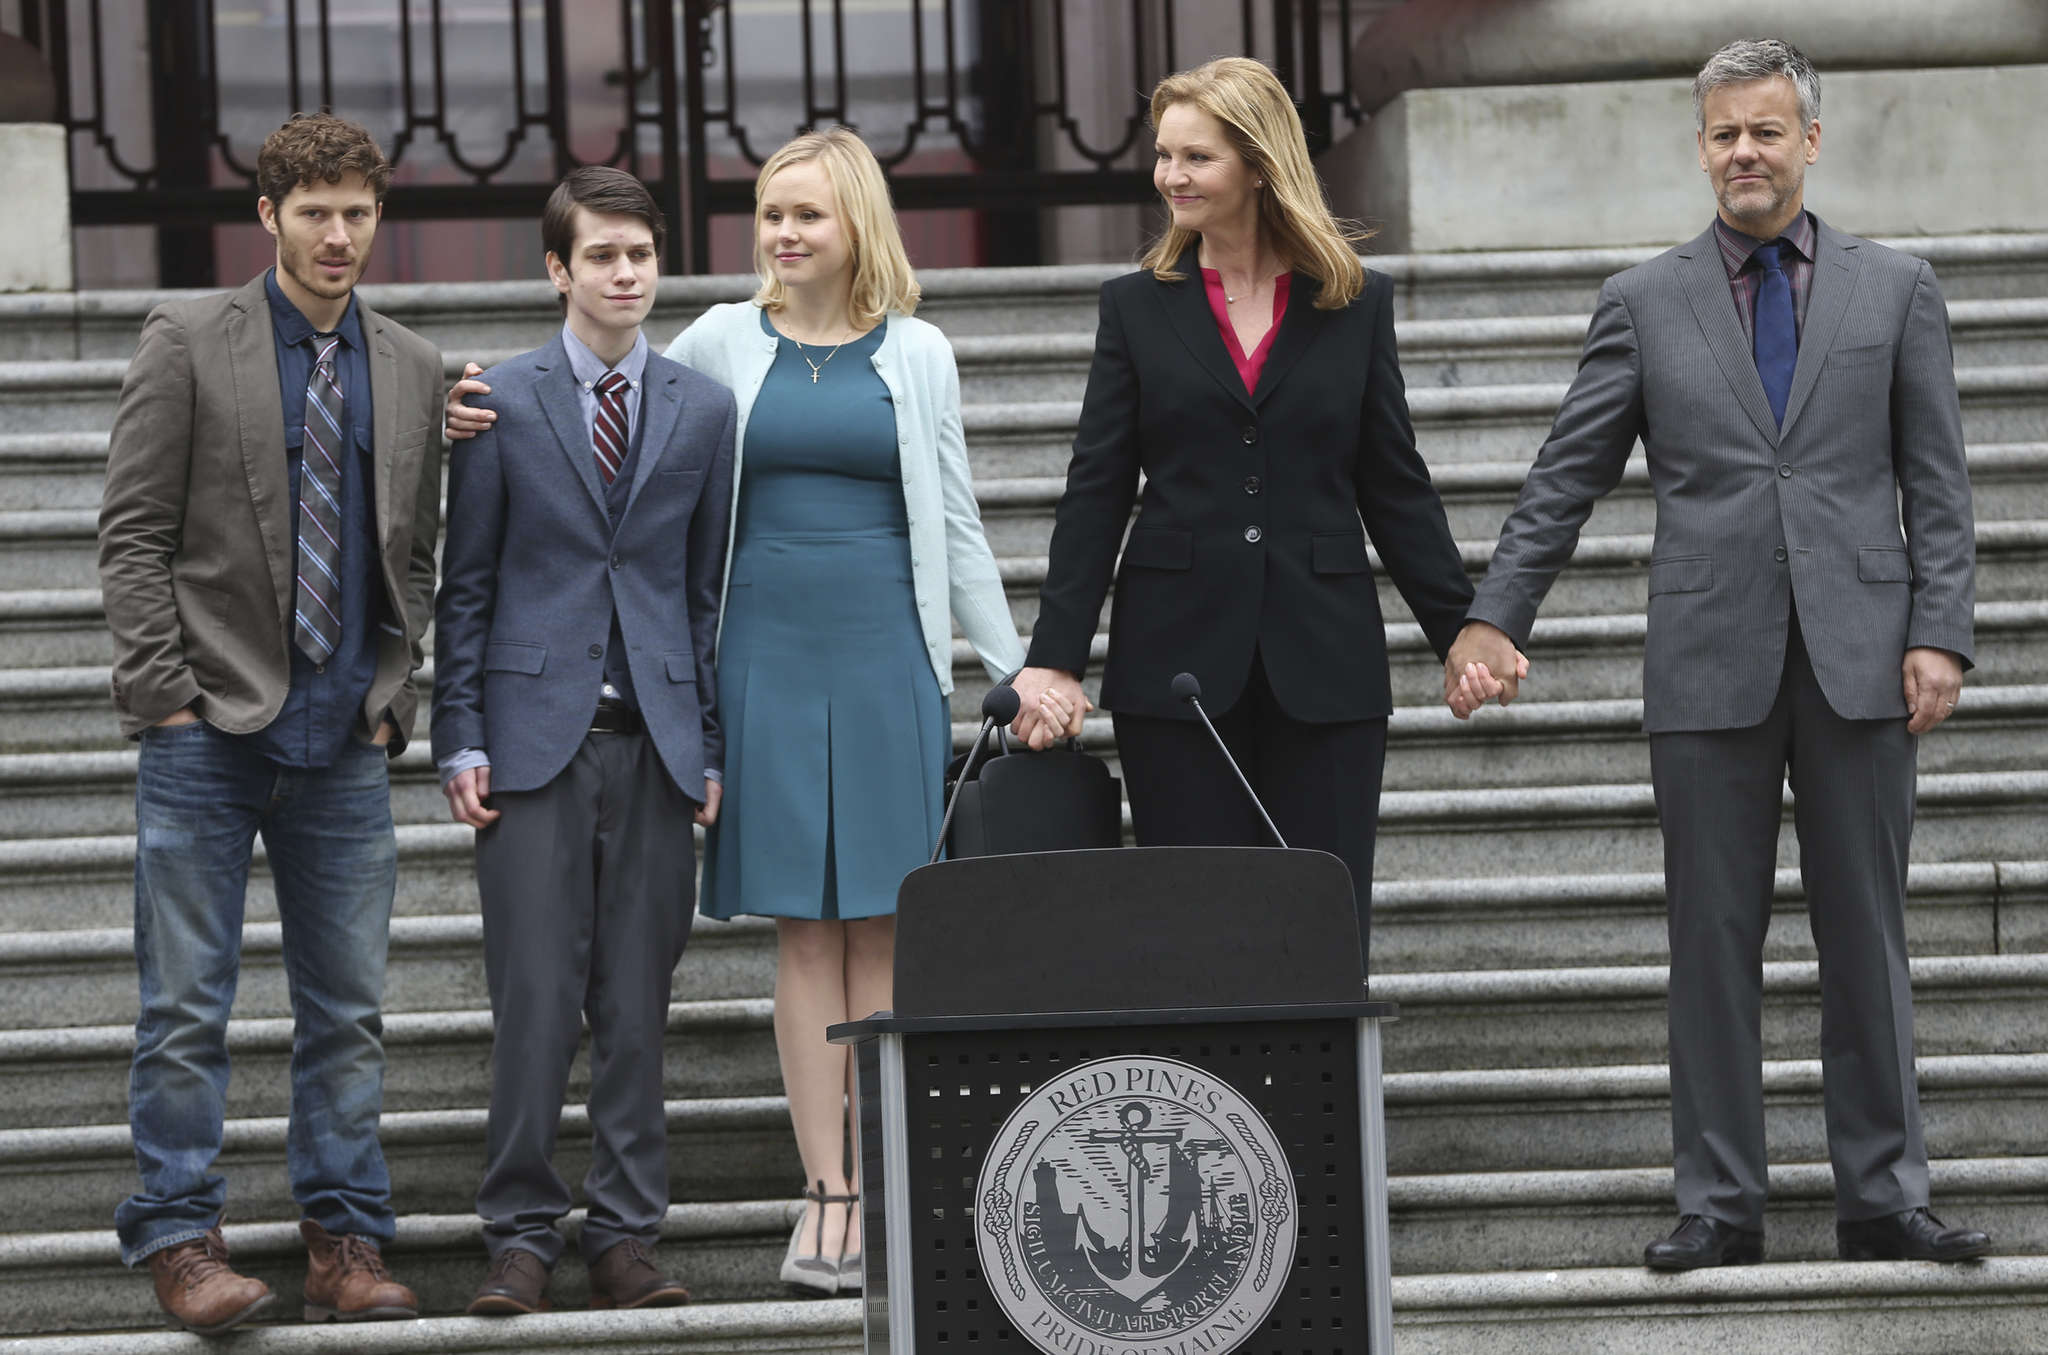 """The Family,"" a thriller about the return of a politician´s young son who was presumed dead, stars (from left) Zach Gilford, Liam James, Alison Pill, Joan Allen, and Rupert Graves."